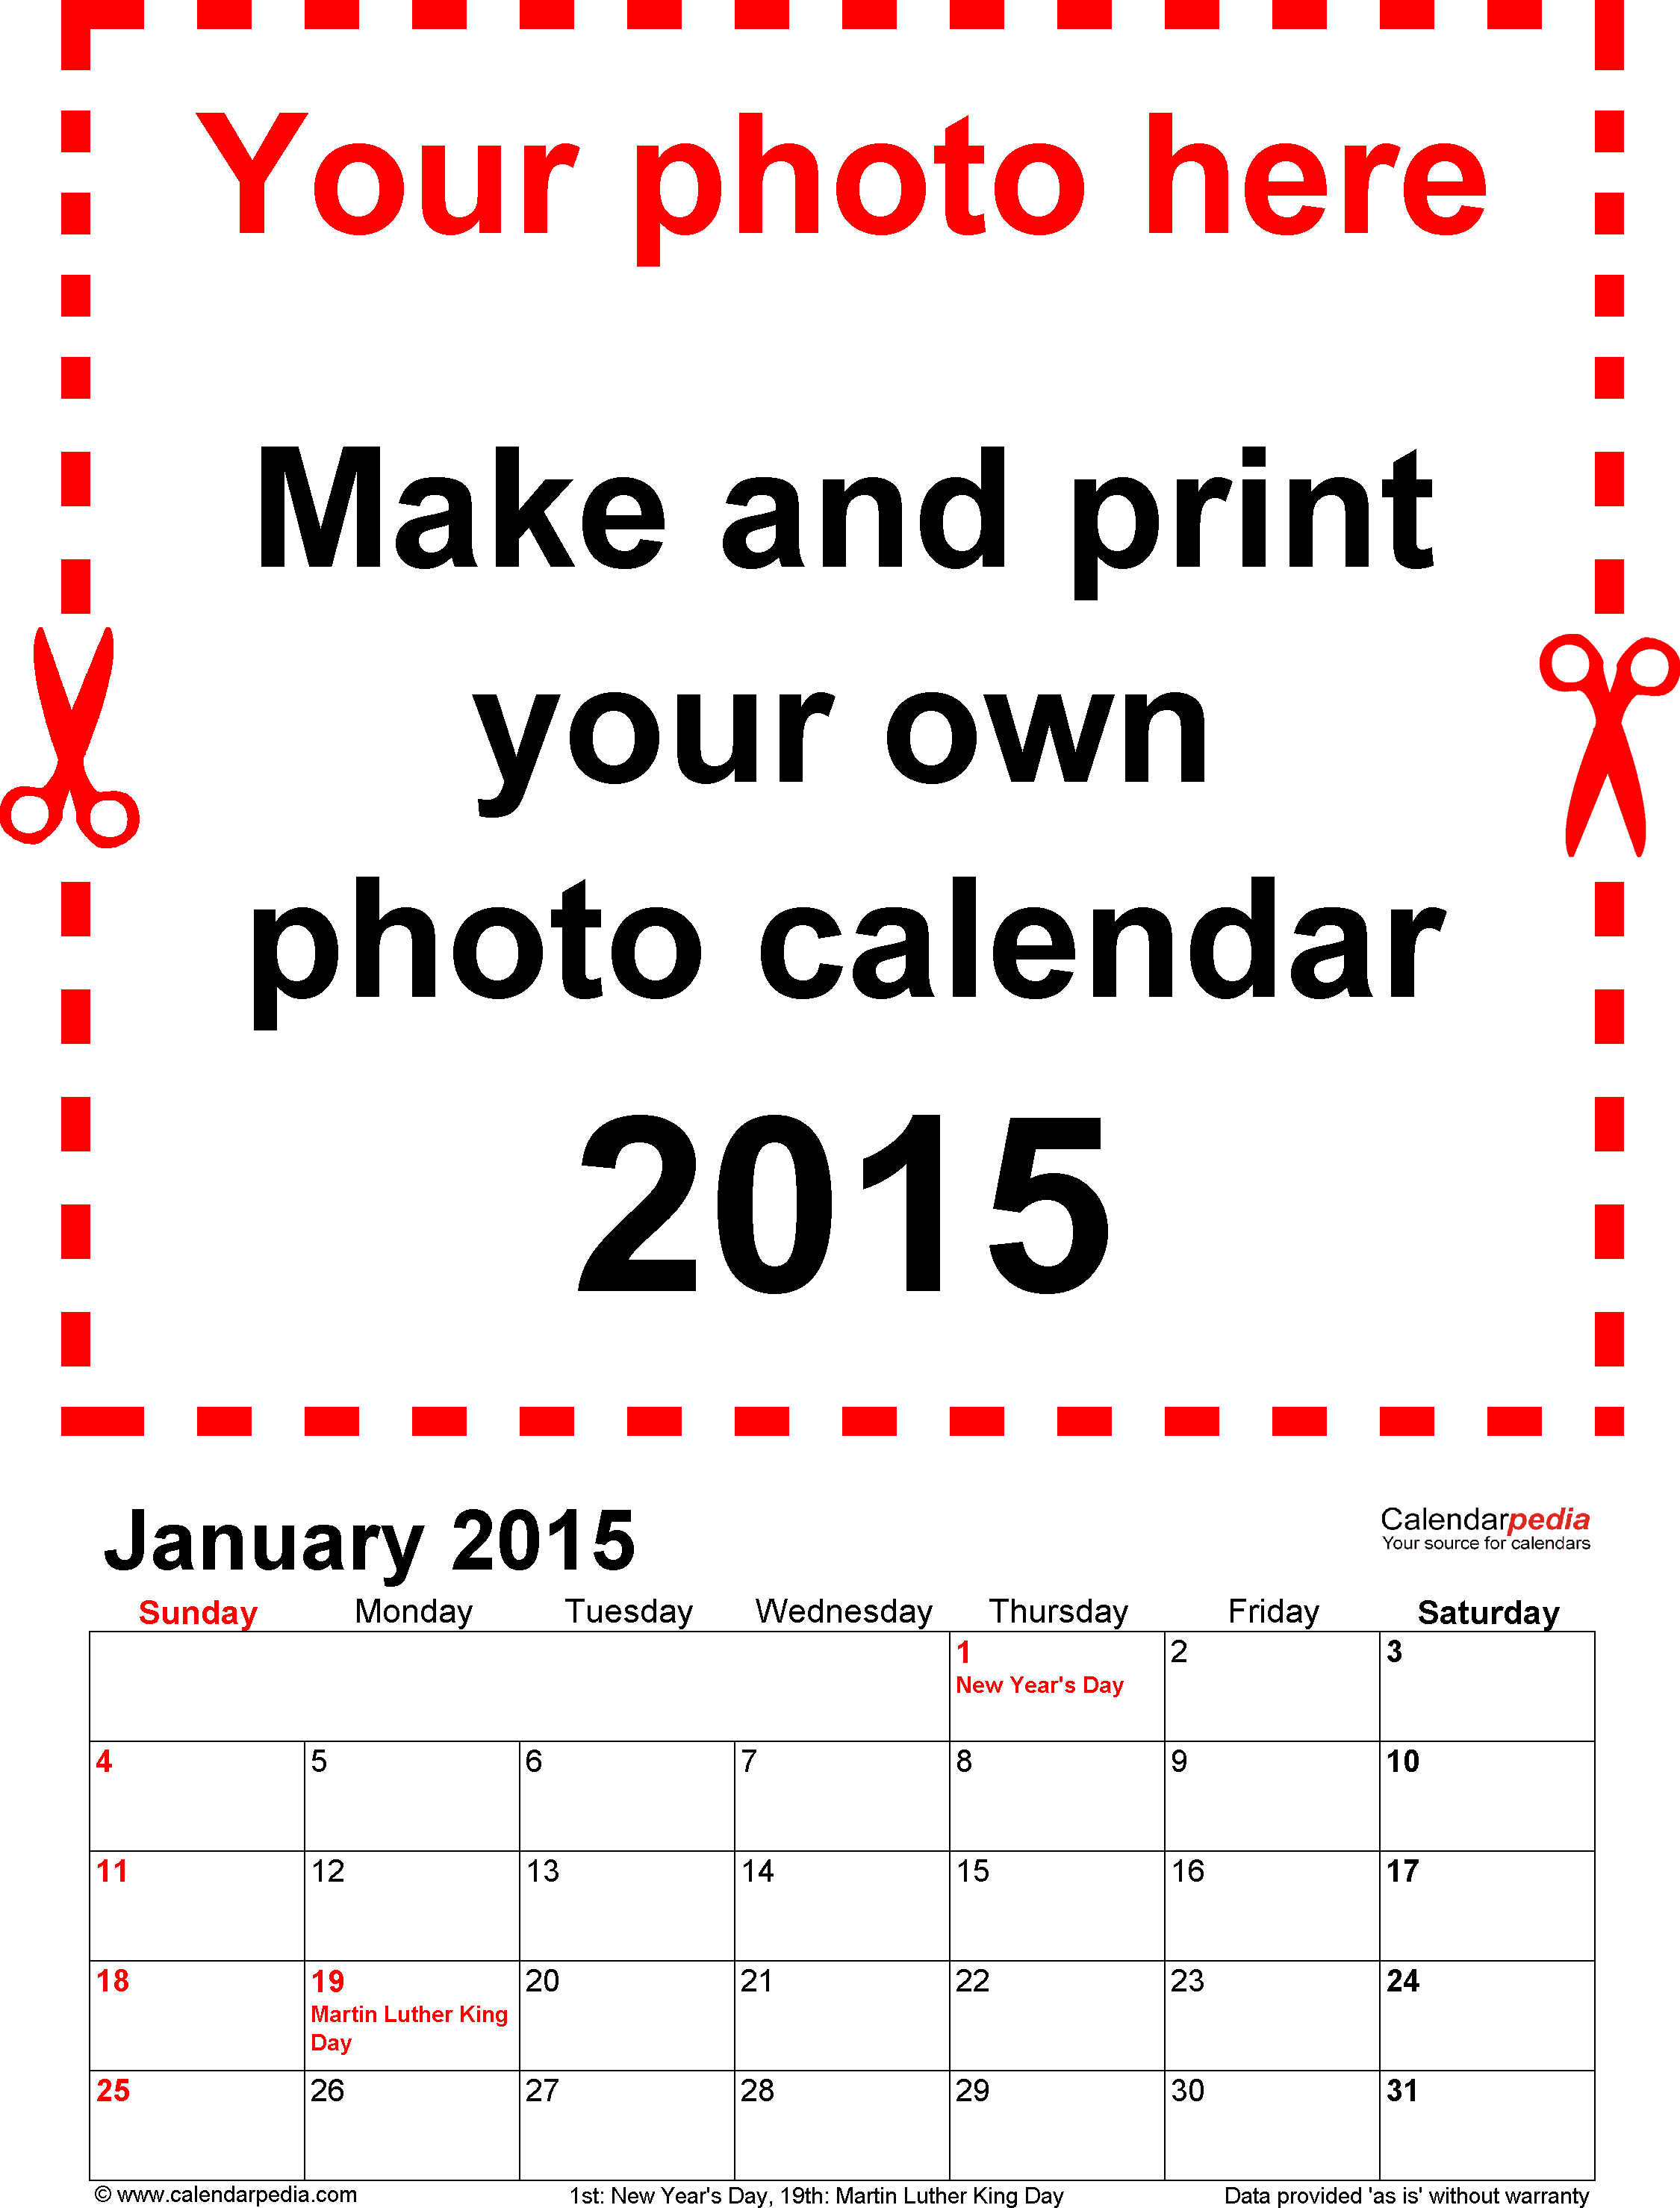 Template 1: Photo calendar 2015 for PDF, 12 pages, portrait format, standard layout